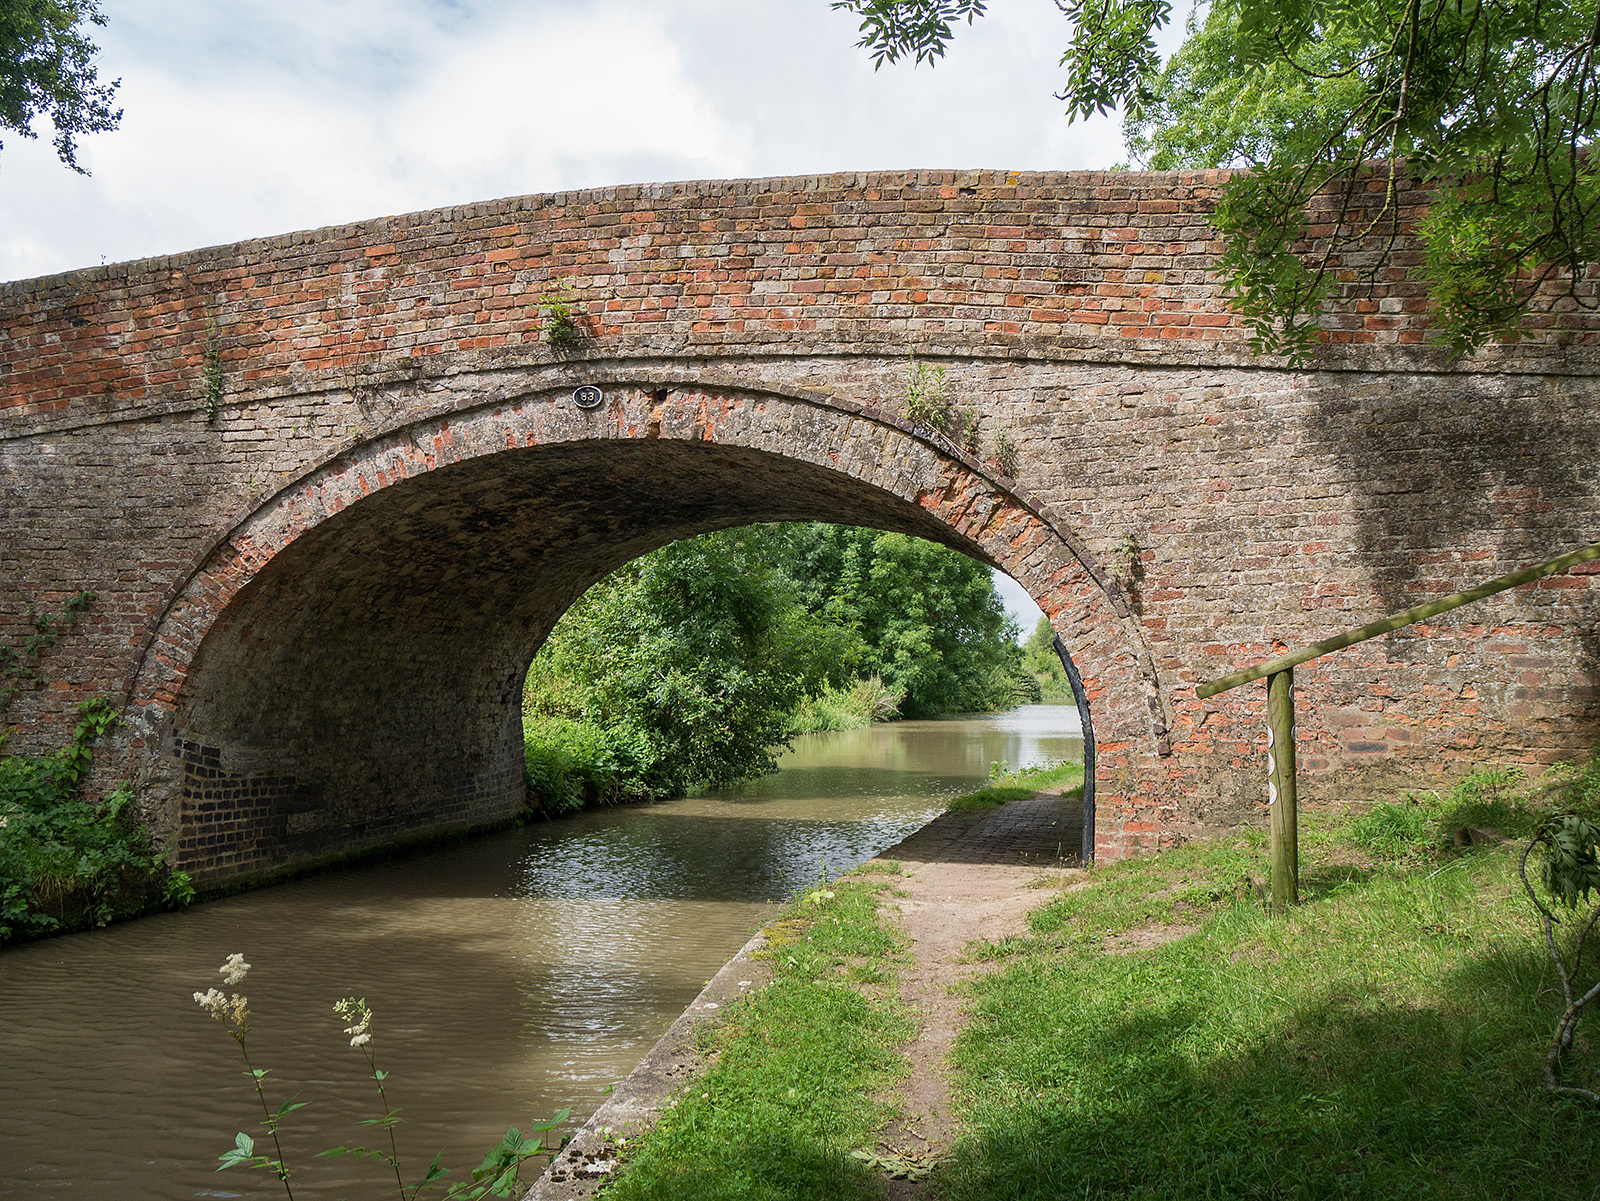 Bridge 63 near Isworth Farm